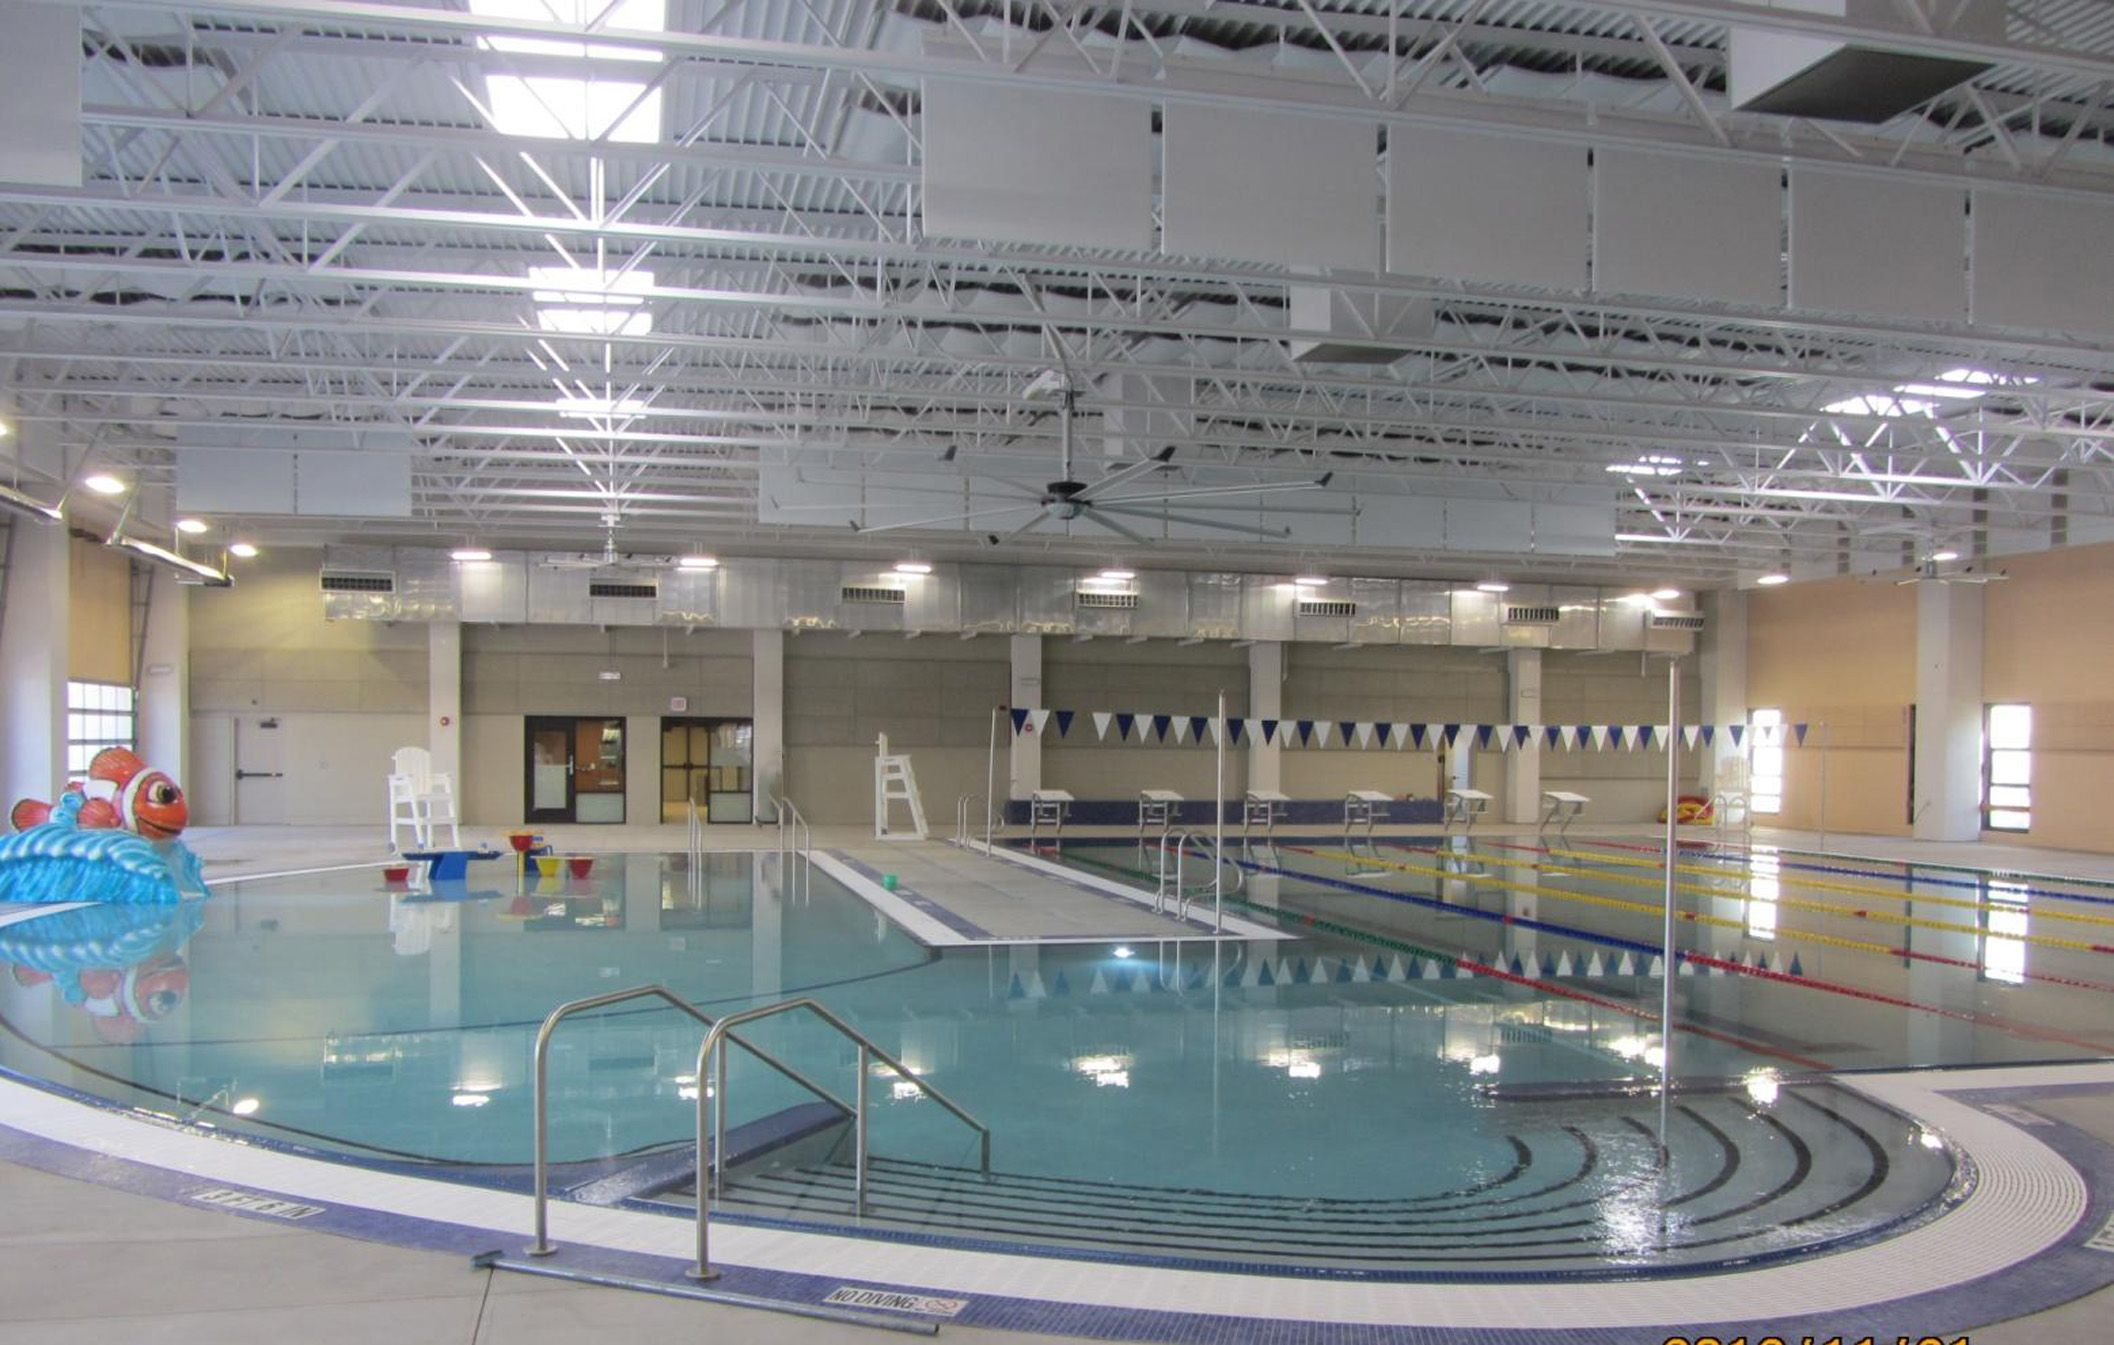 Plano Aquatic Center Admission Fee $3 (Ages 3 And Up)